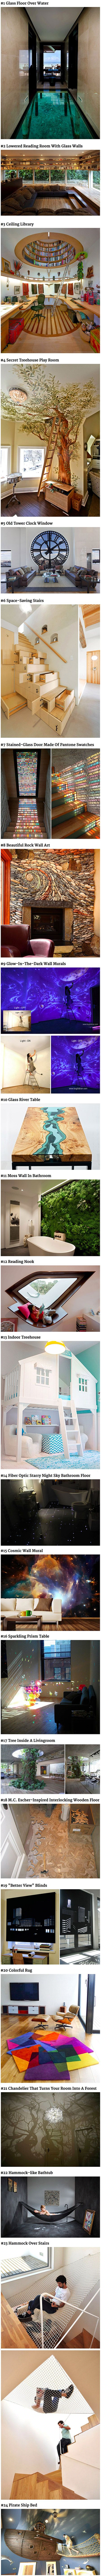 Here are some ultra creative home ideas that geeks would love.